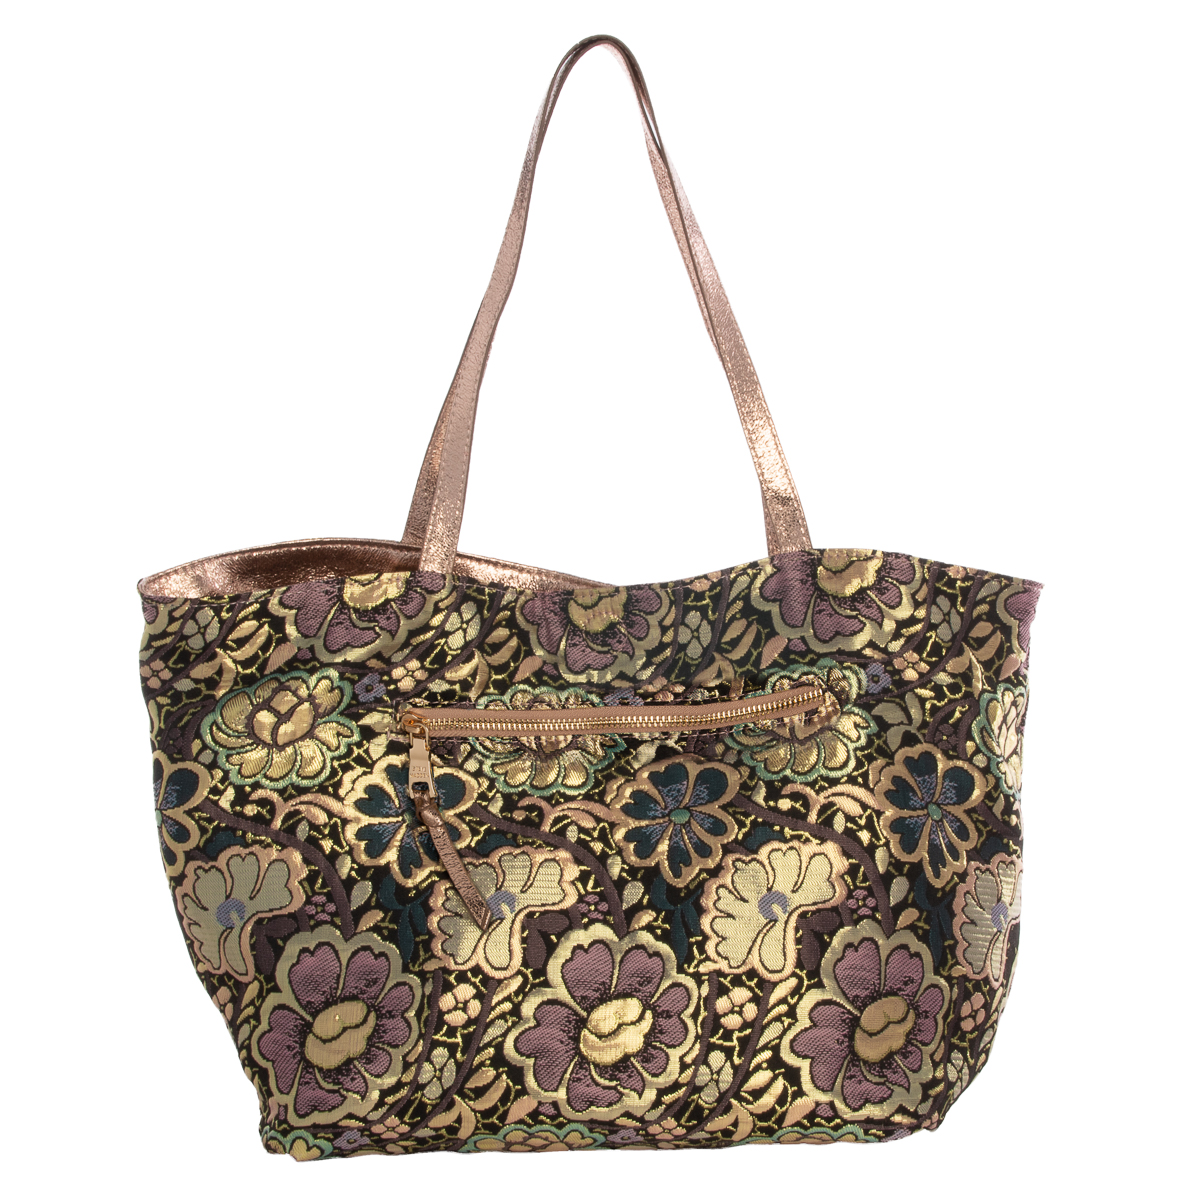 Steve-Madden-Handbags-For-Women-Tote-Bag-Reversible-with-Zip-Clutch-Purse thumbnail 24